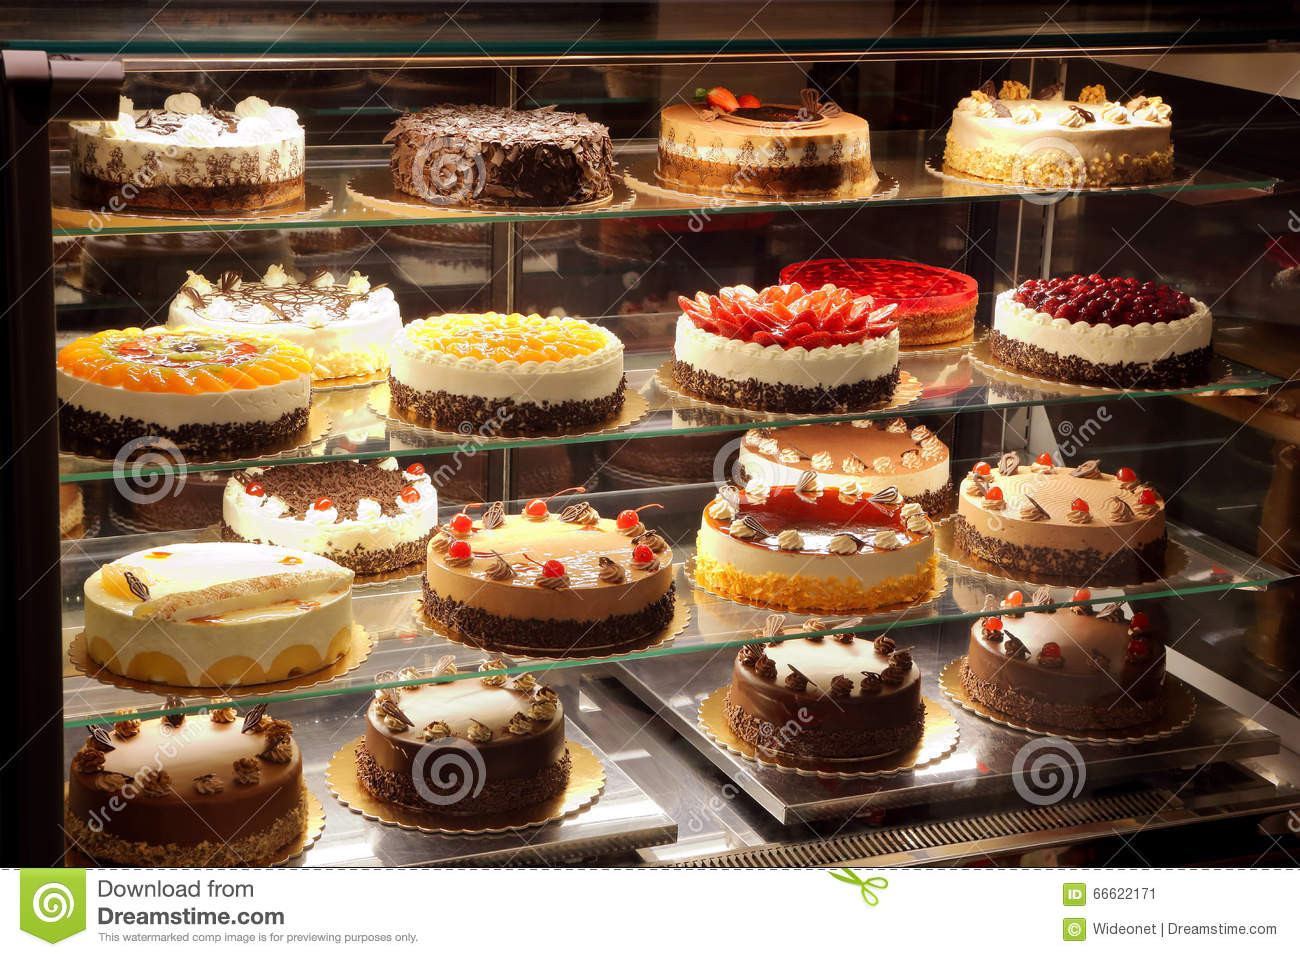 Types Of Christmas Cakes  Different Types Cakes In Pastry Shop Glass Display